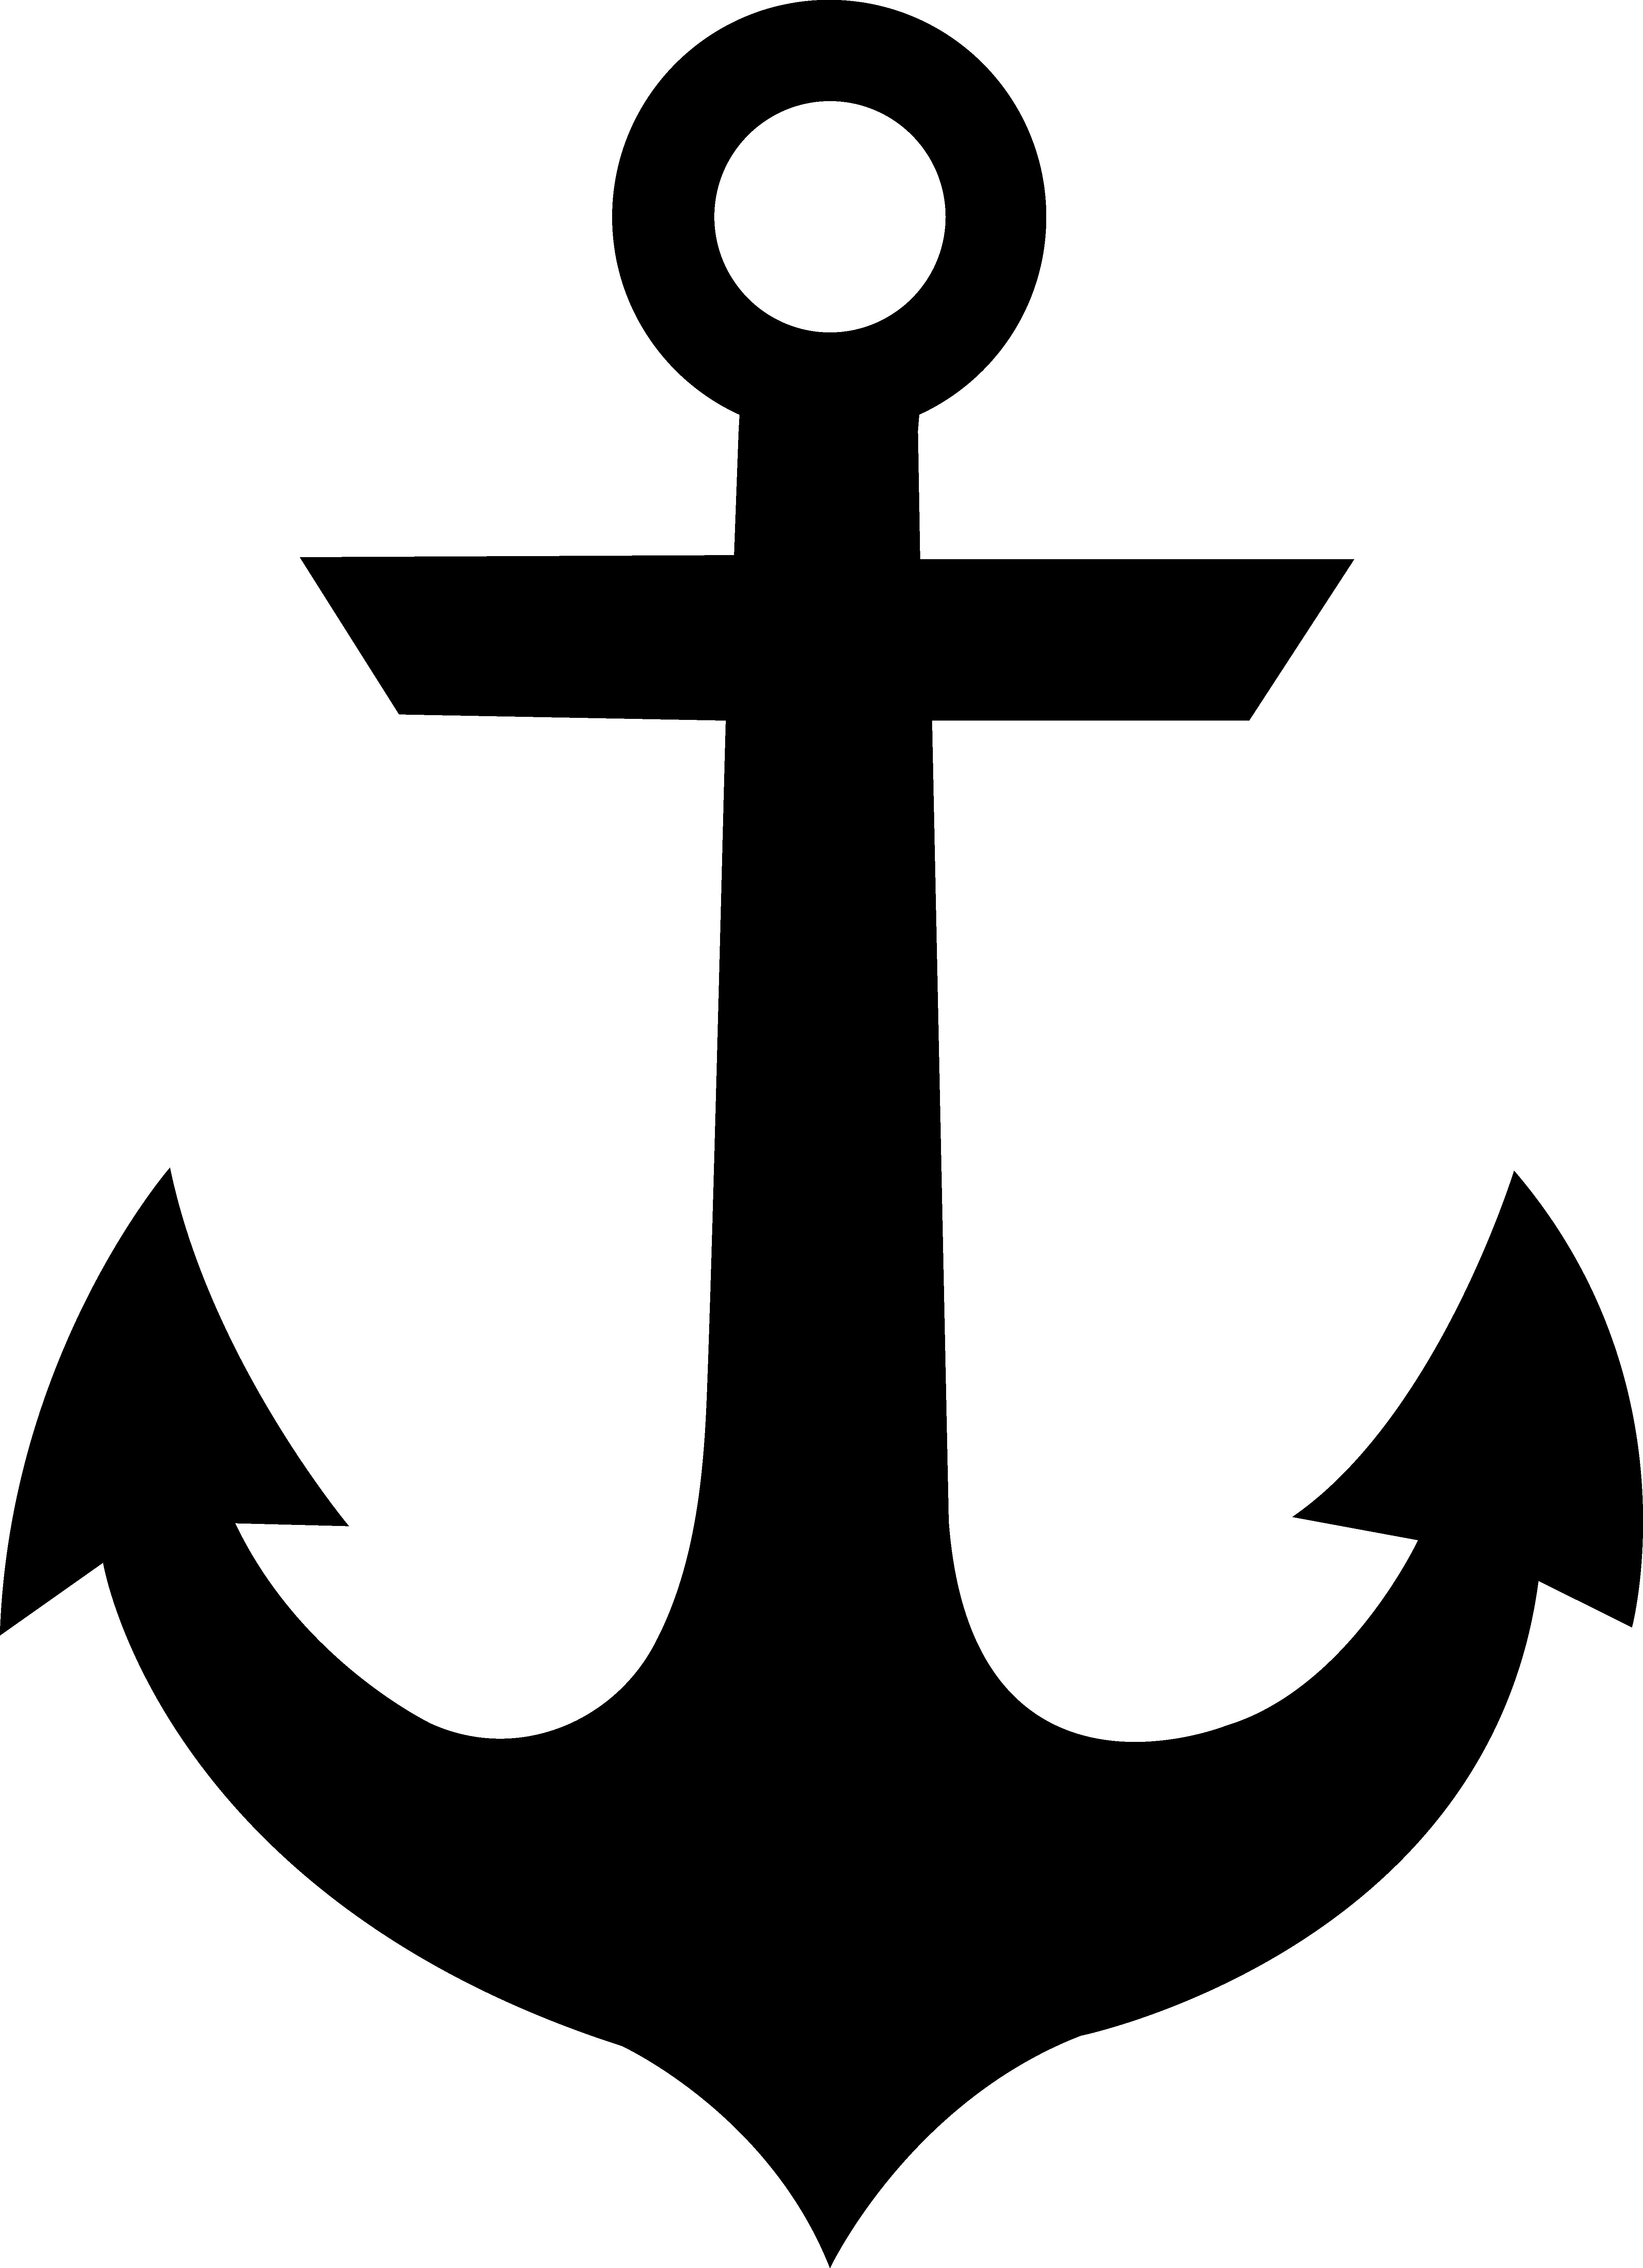 Anchor PNG Images, Anchor White, Navy Anchor Png Clipart.